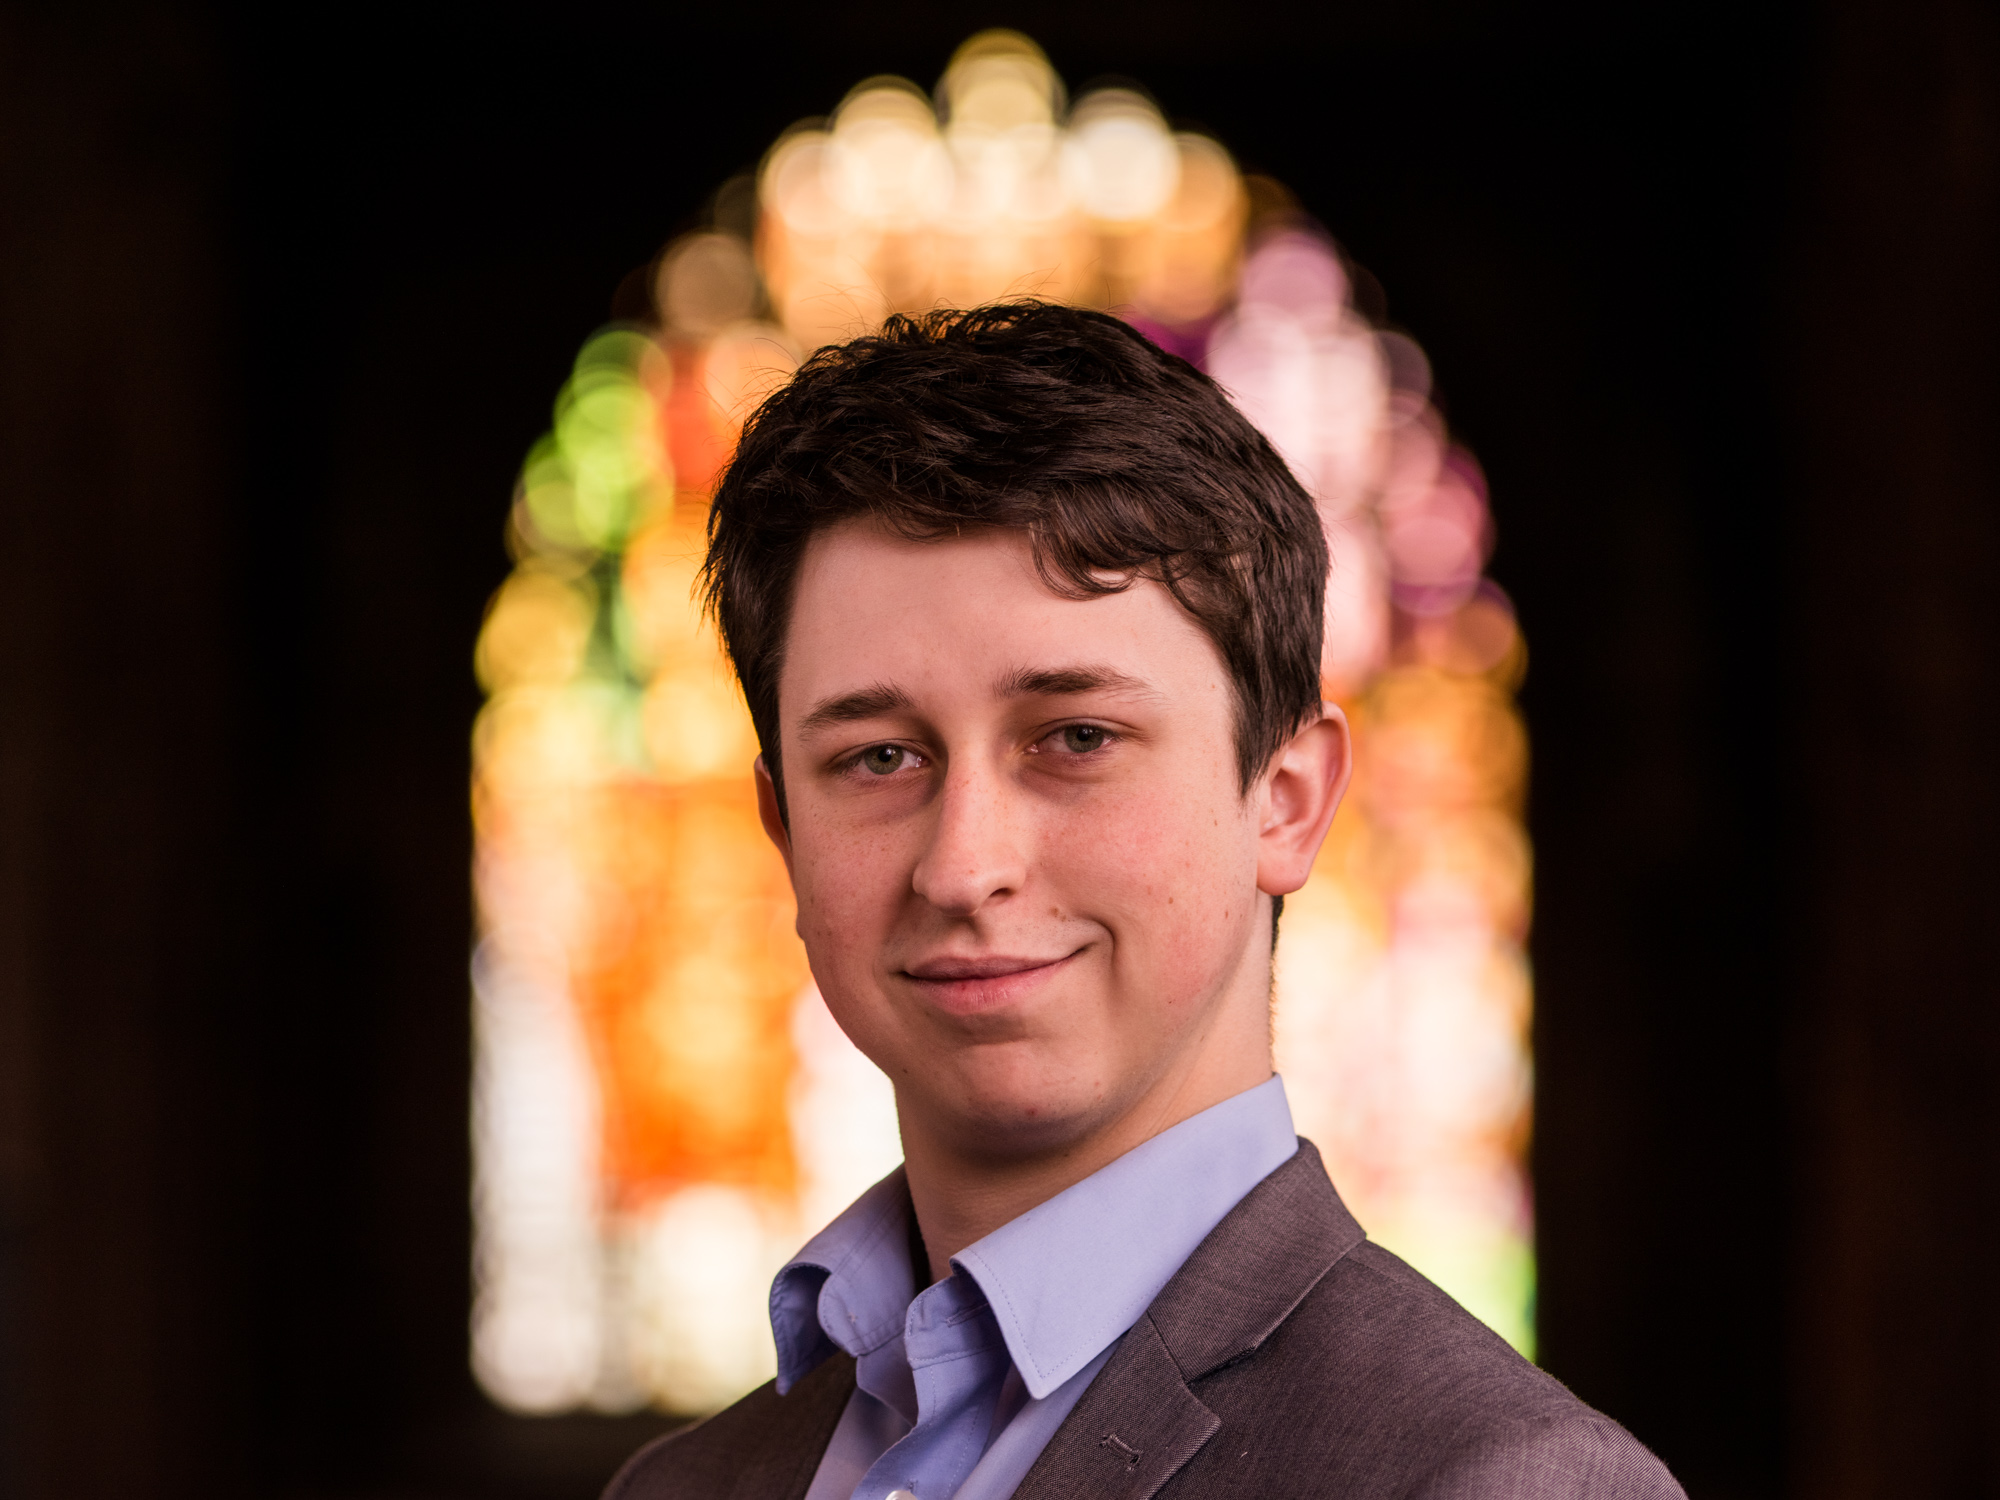 Great to shoot some portraits of the team too - Aaron Shilson is the Organ Scholar at the Cathedral